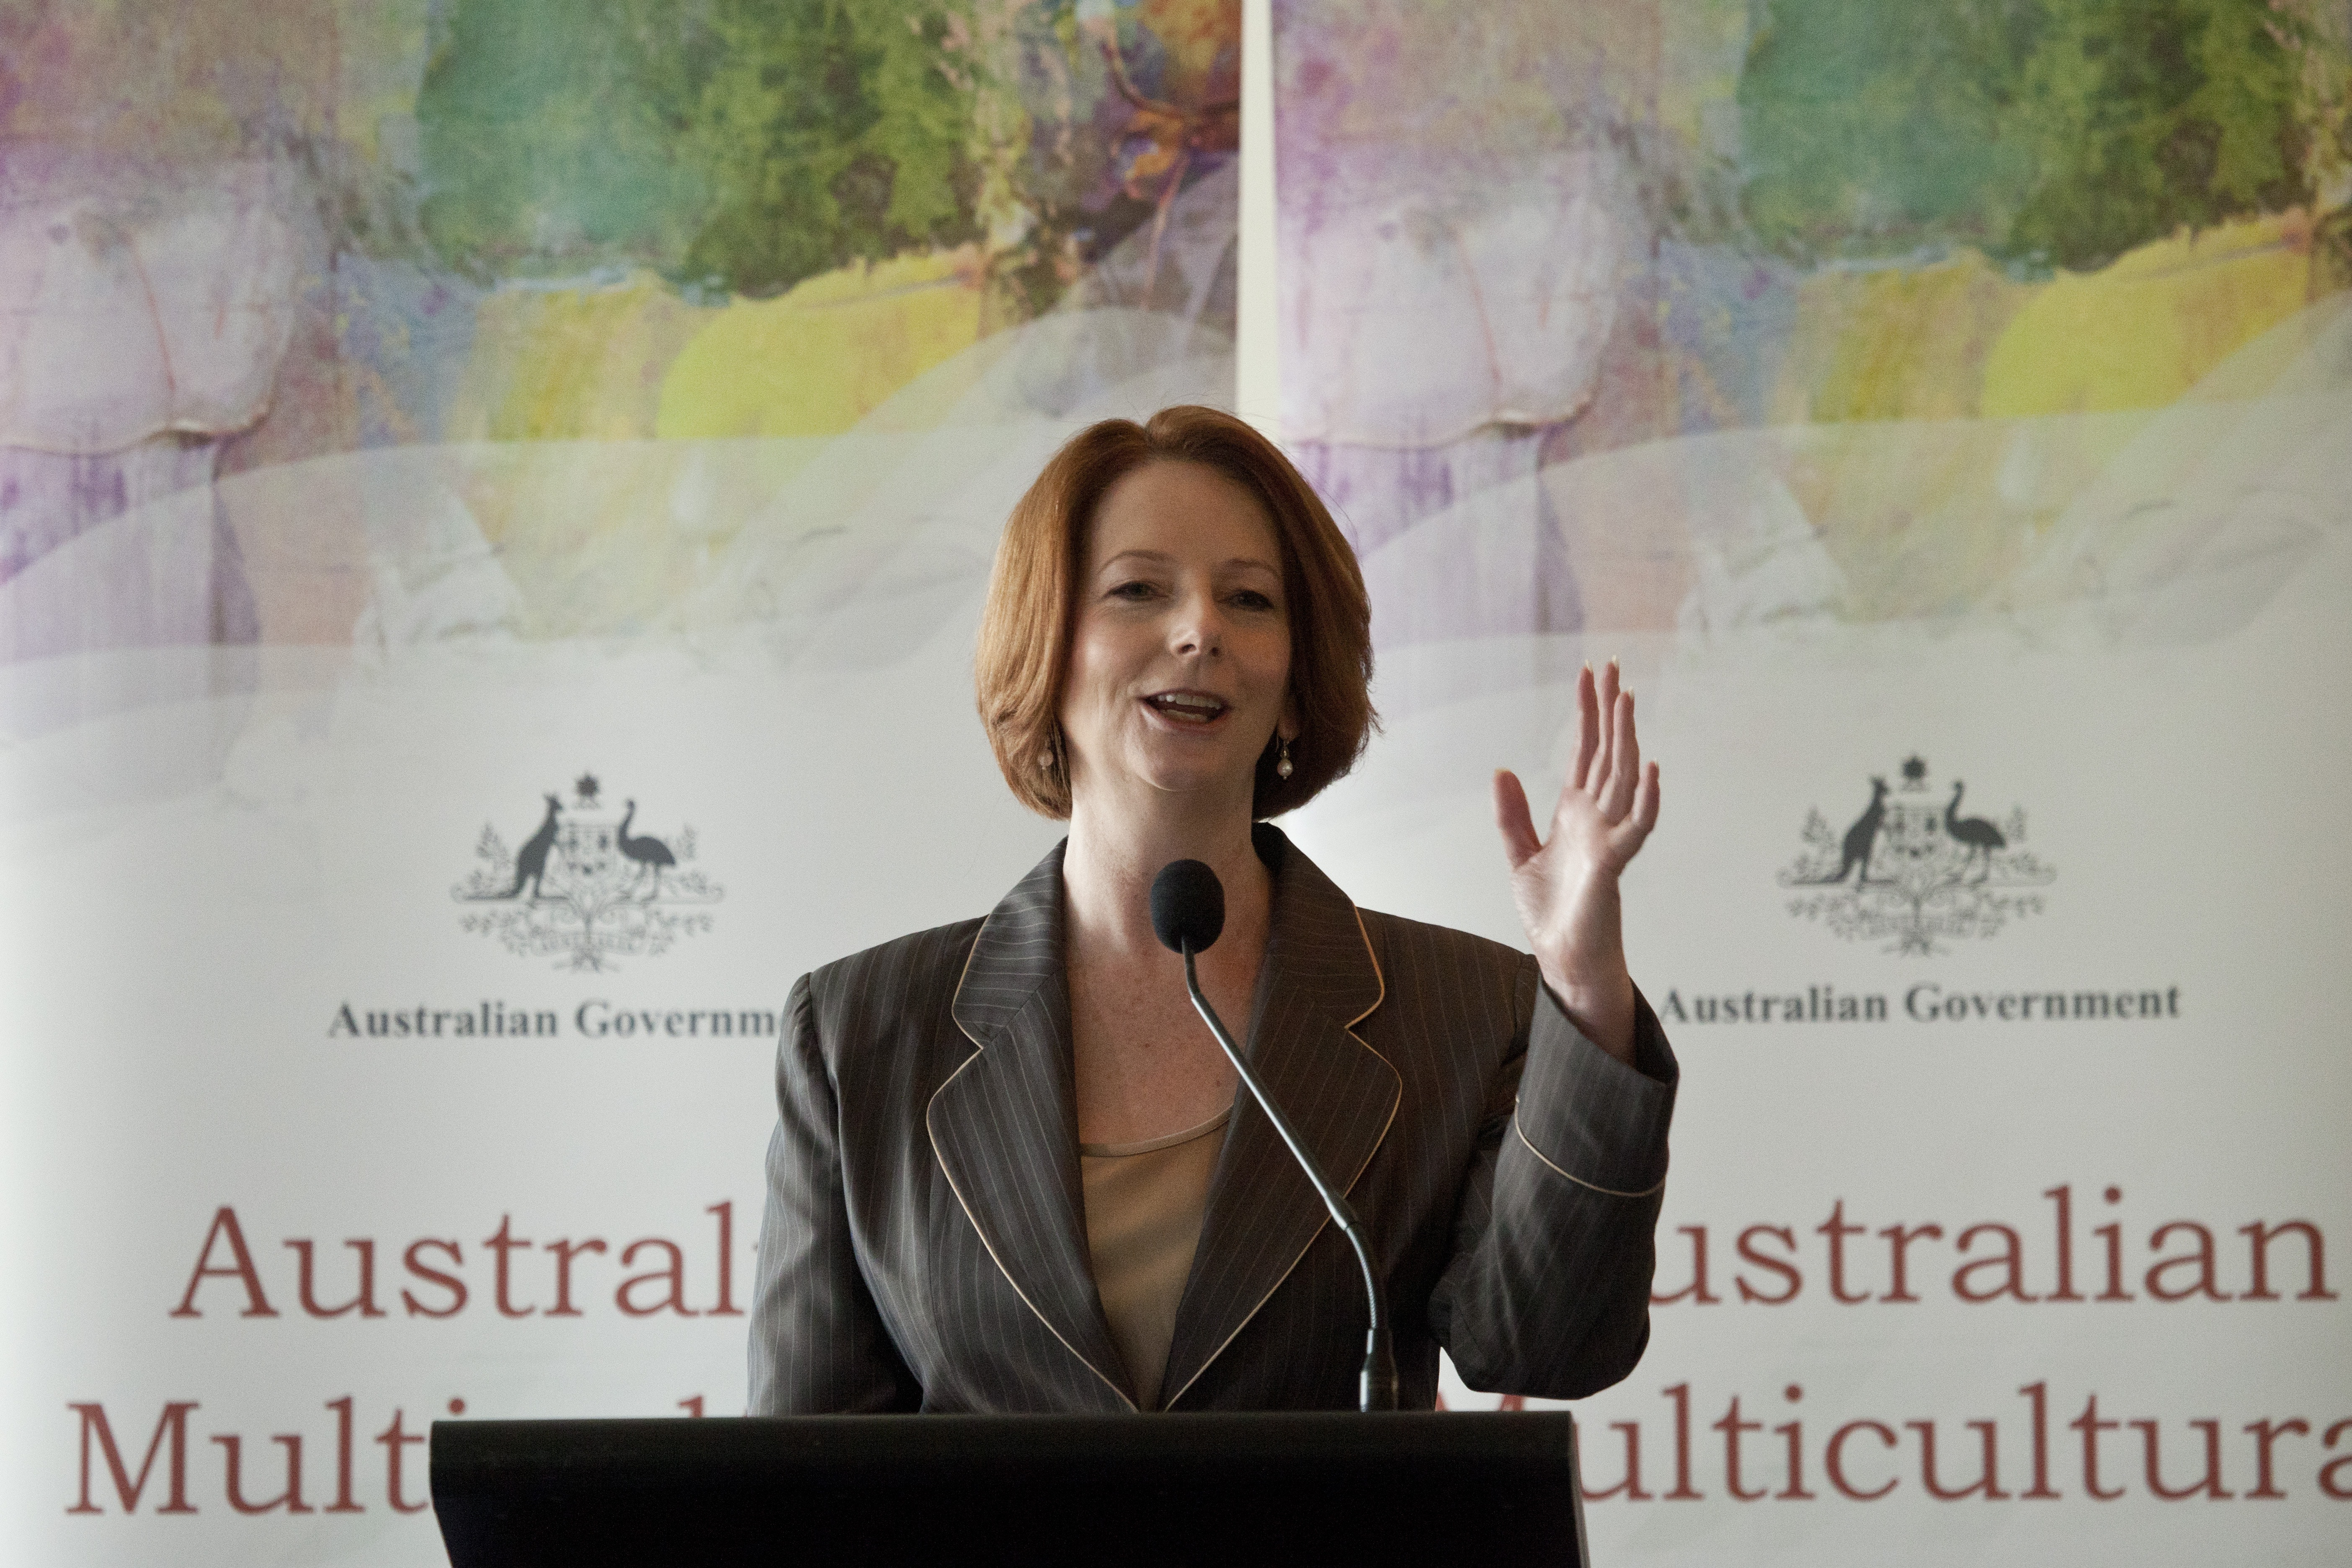 multiculturalism in australia essay Impacts of multiculturalism in australia just as the britons brought about a cultural variegation in india through social and economic interactions, so was the case in australia to a great extent, australia has come to experience an increase in the number of immigrations in the last ten years.